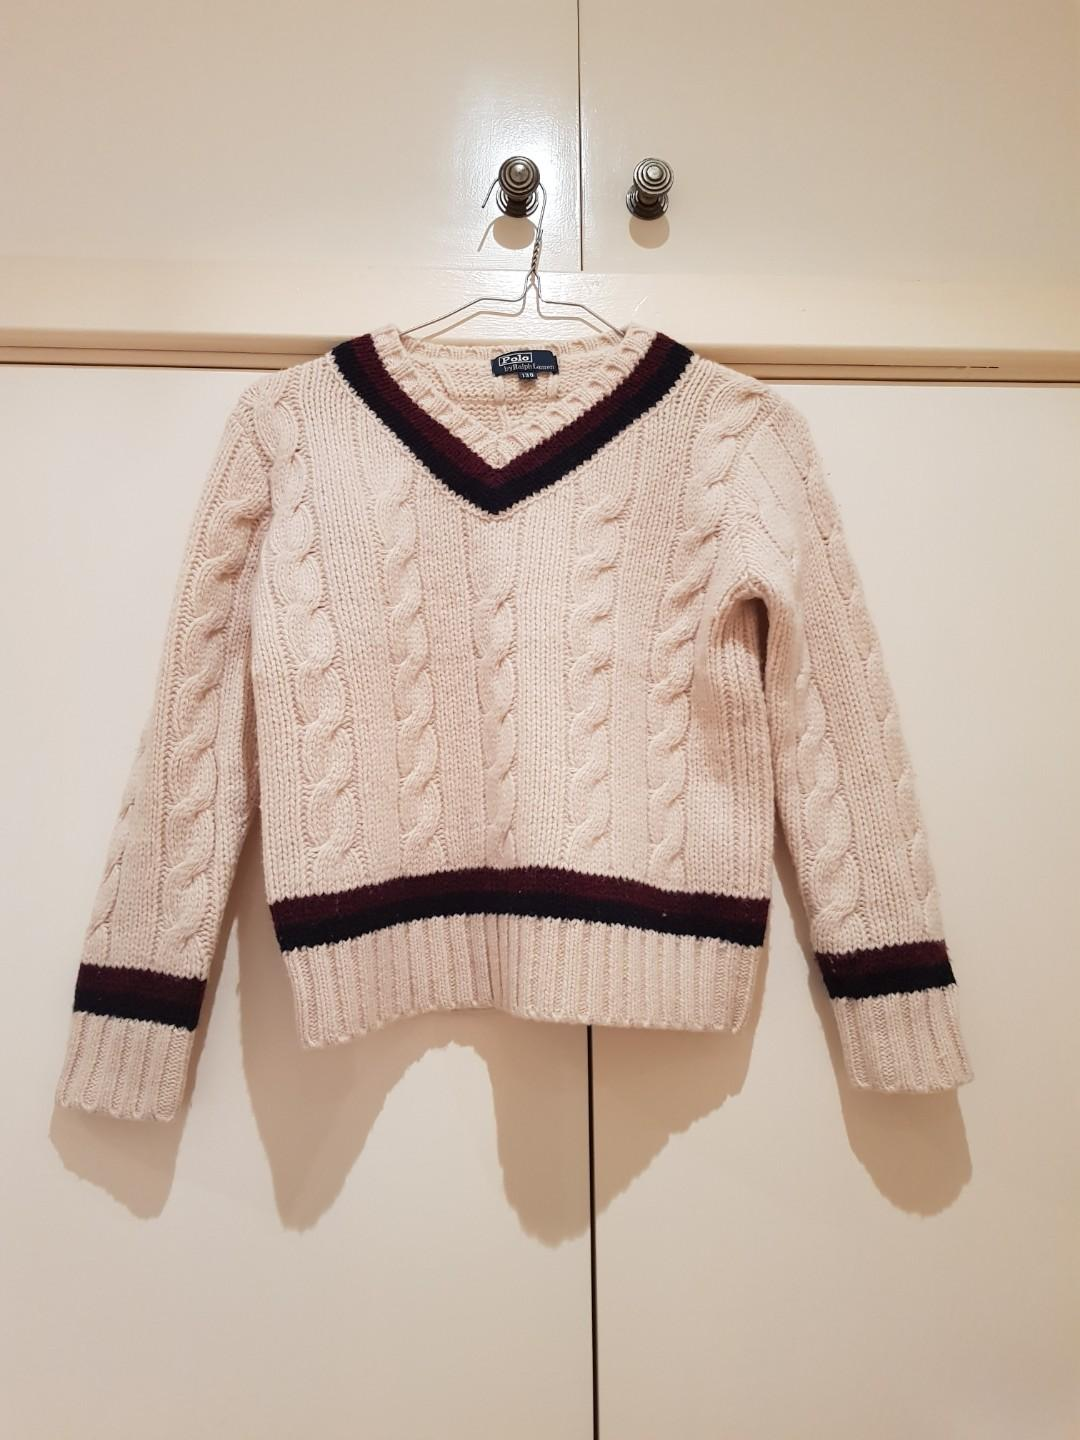 Vintage Polo by Ralph Lauren Cable Knit Sweater Size XXS/4